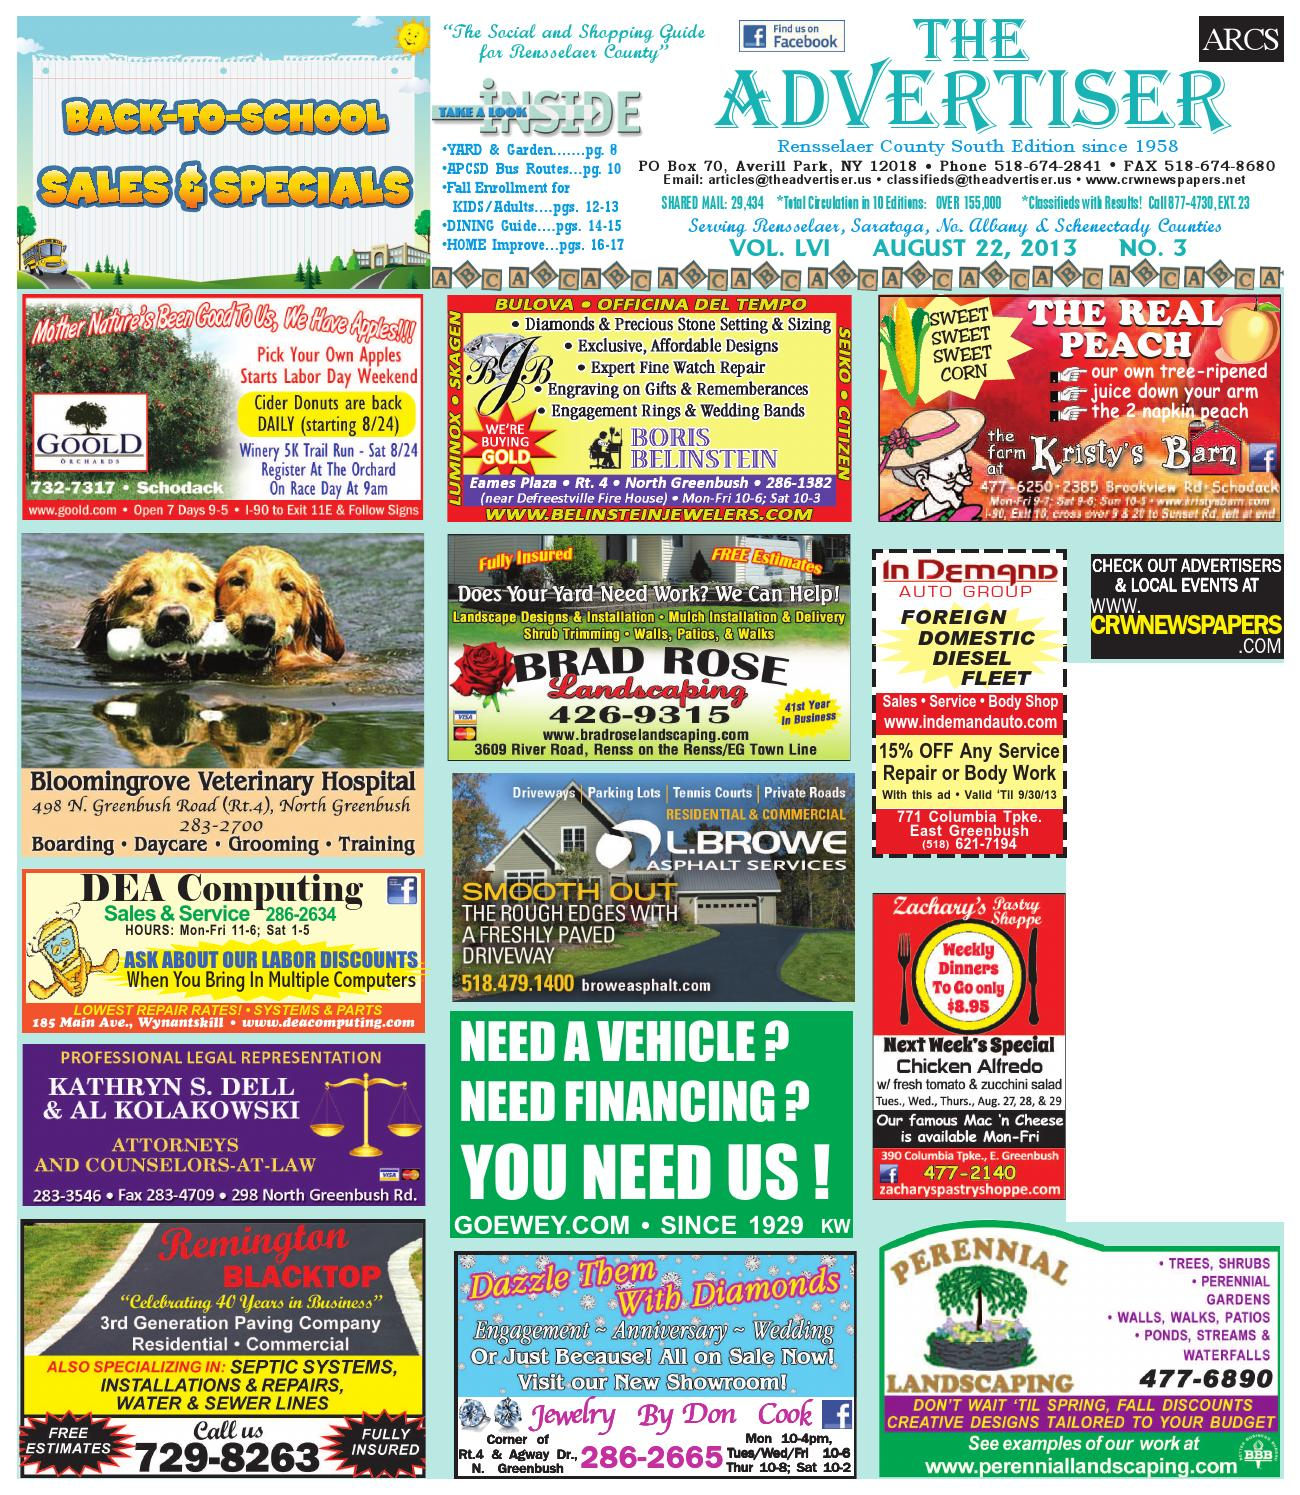 Advertiser South 082213 By Capital Region Weekly Newspapers Issuu Dazzle Guard Diamond Coating